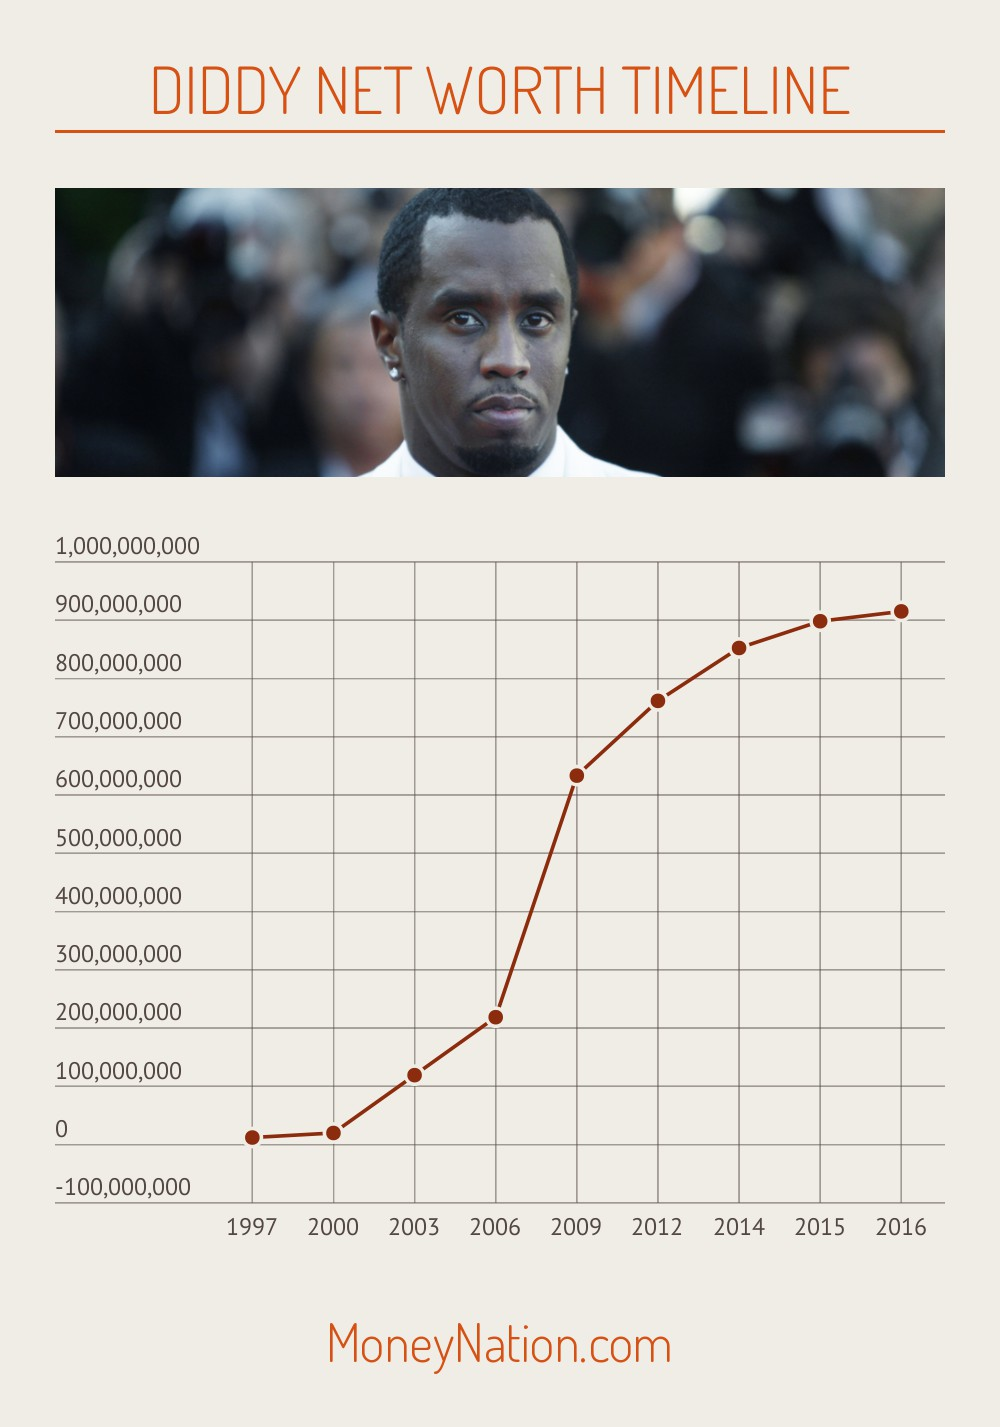 Diddy Net Worth Timeline